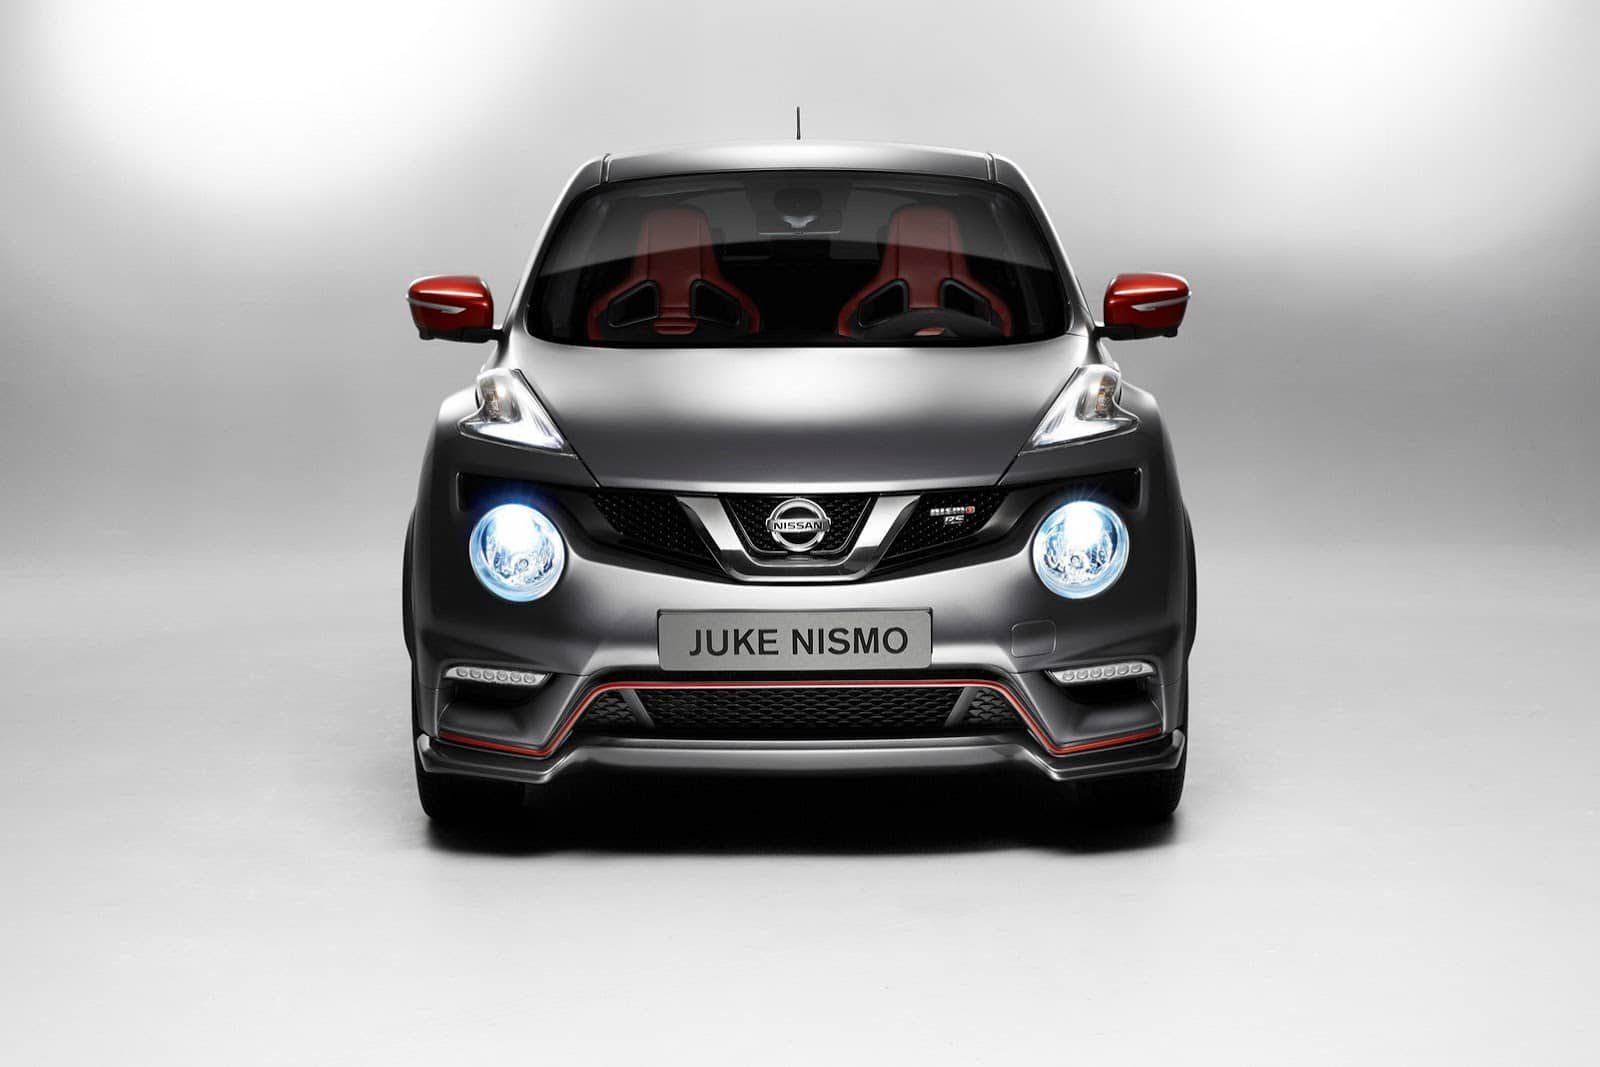 nissan juke nismo 2014 il gagne 18 ch pour son restylage. Black Bedroom Furniture Sets. Home Design Ideas